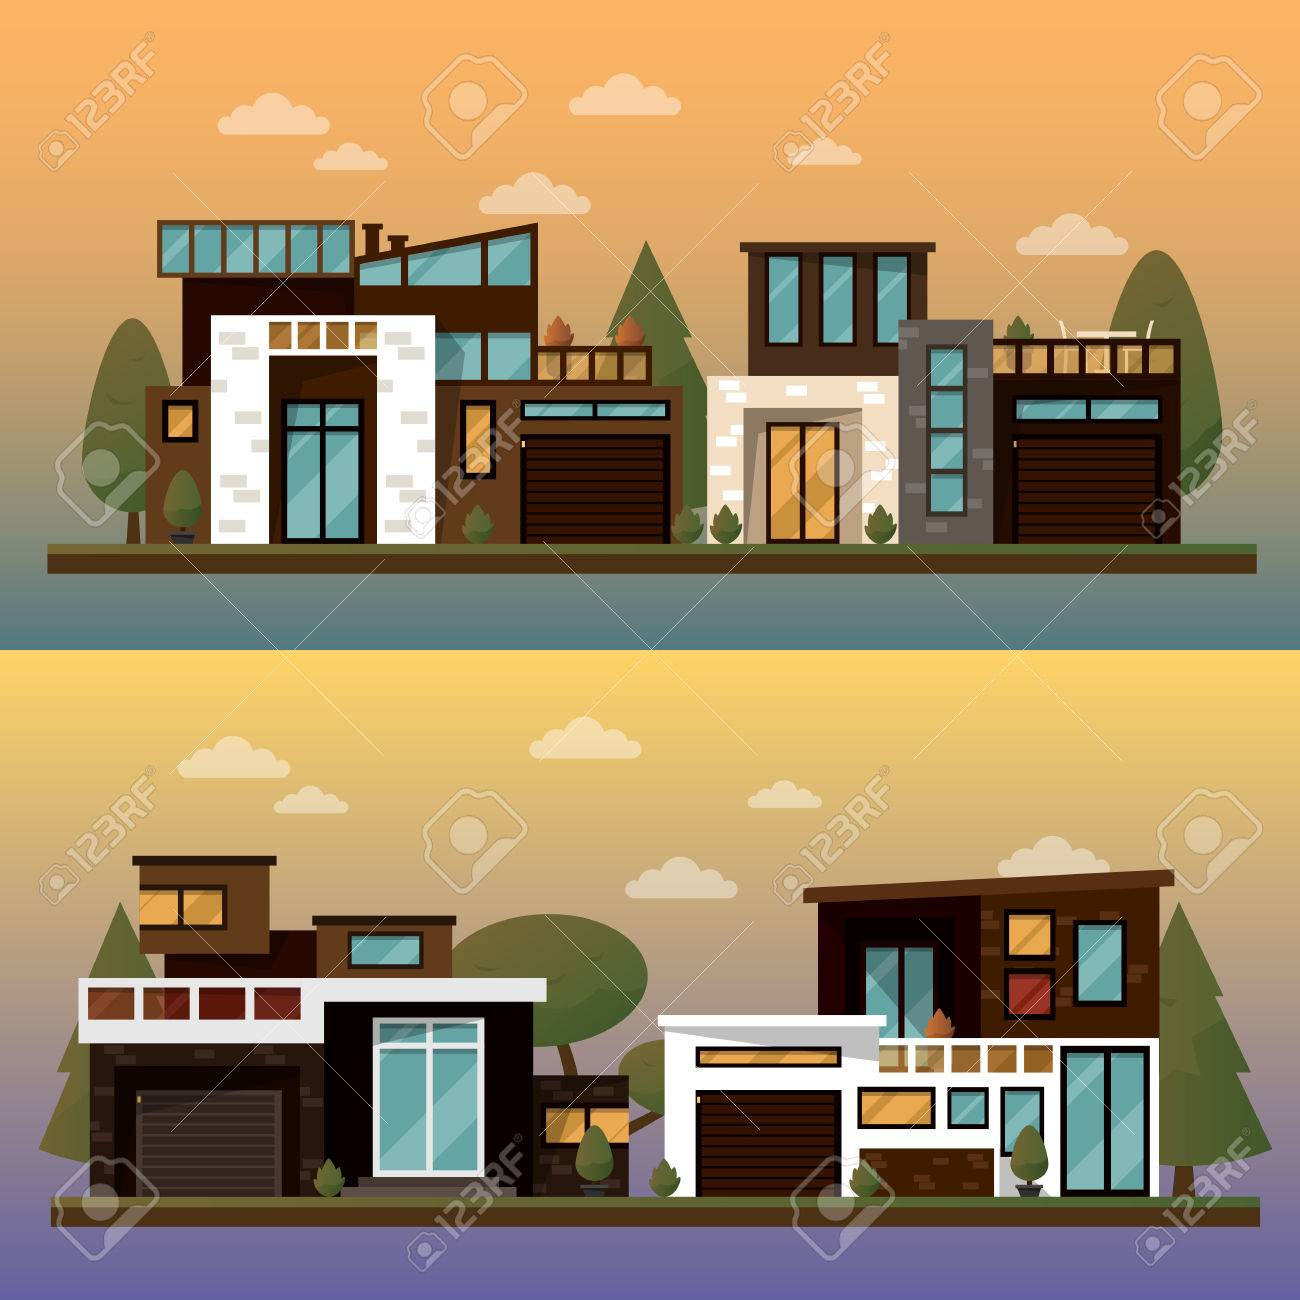 vector vector flat illustration of two family house and sweet home banners outdoor street private pavement backyard with garage